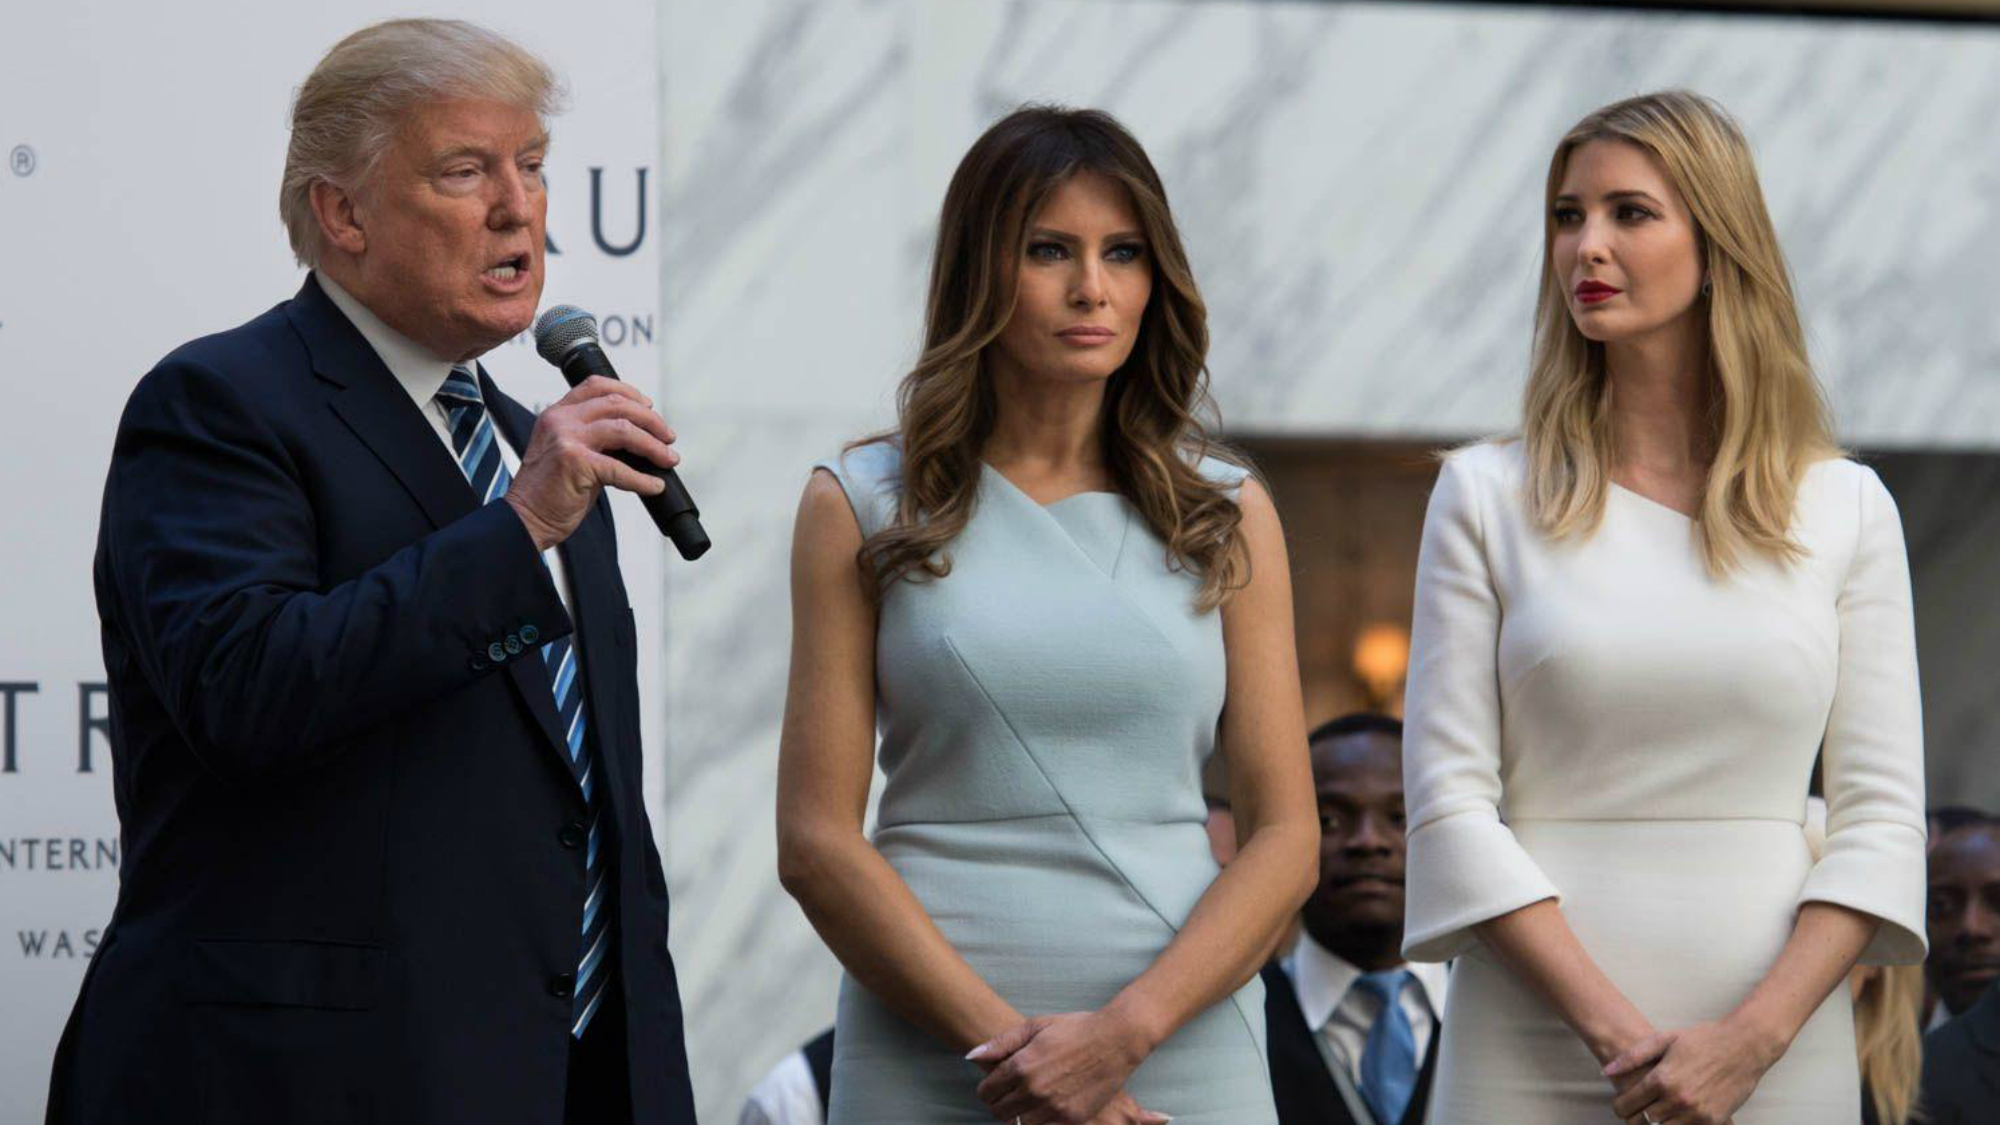 Melania and Ivanka Trump just caused some controversy in ... Stephanie Grisham